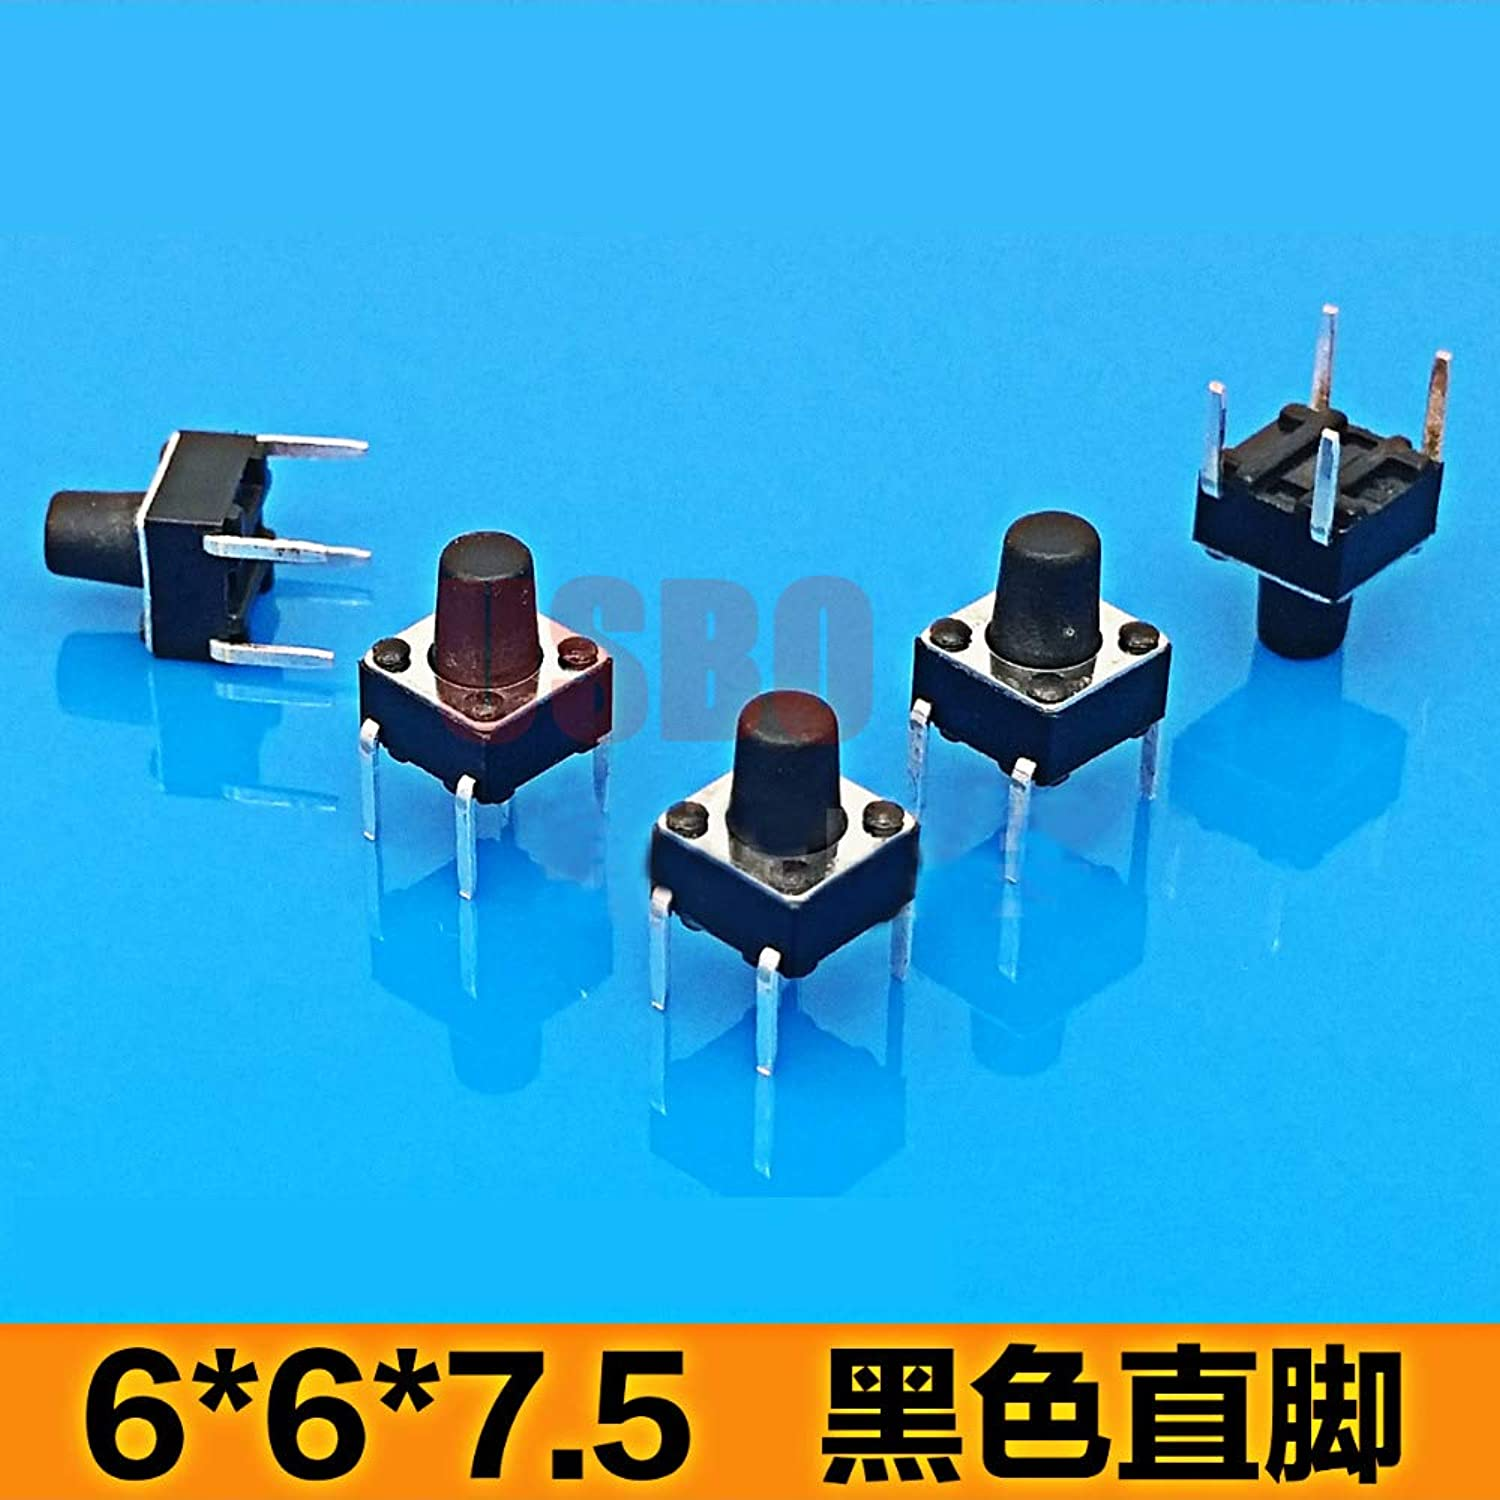 Dustproof Right Angle Light Touch Switch with Button Micro Black Tact Switch66  7.5mm 4 Legs  (color  Black)